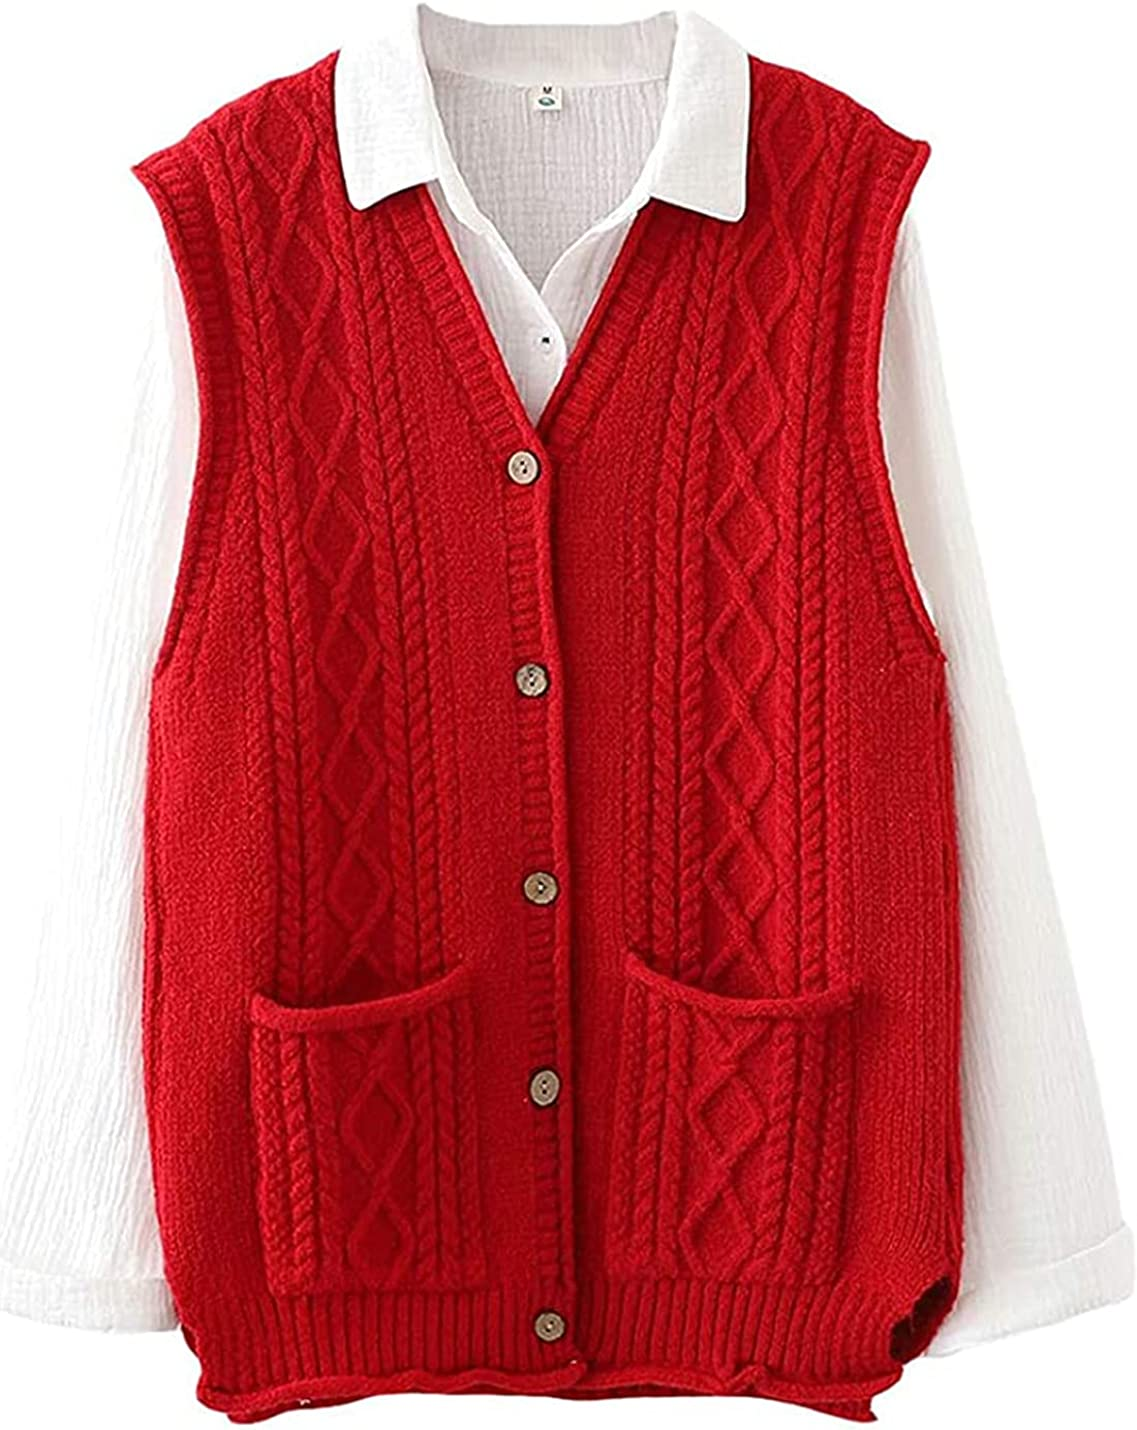 Women's Cable Knit Sweater Vest V Neck Button Down Sleeveless Cardigan Outwear